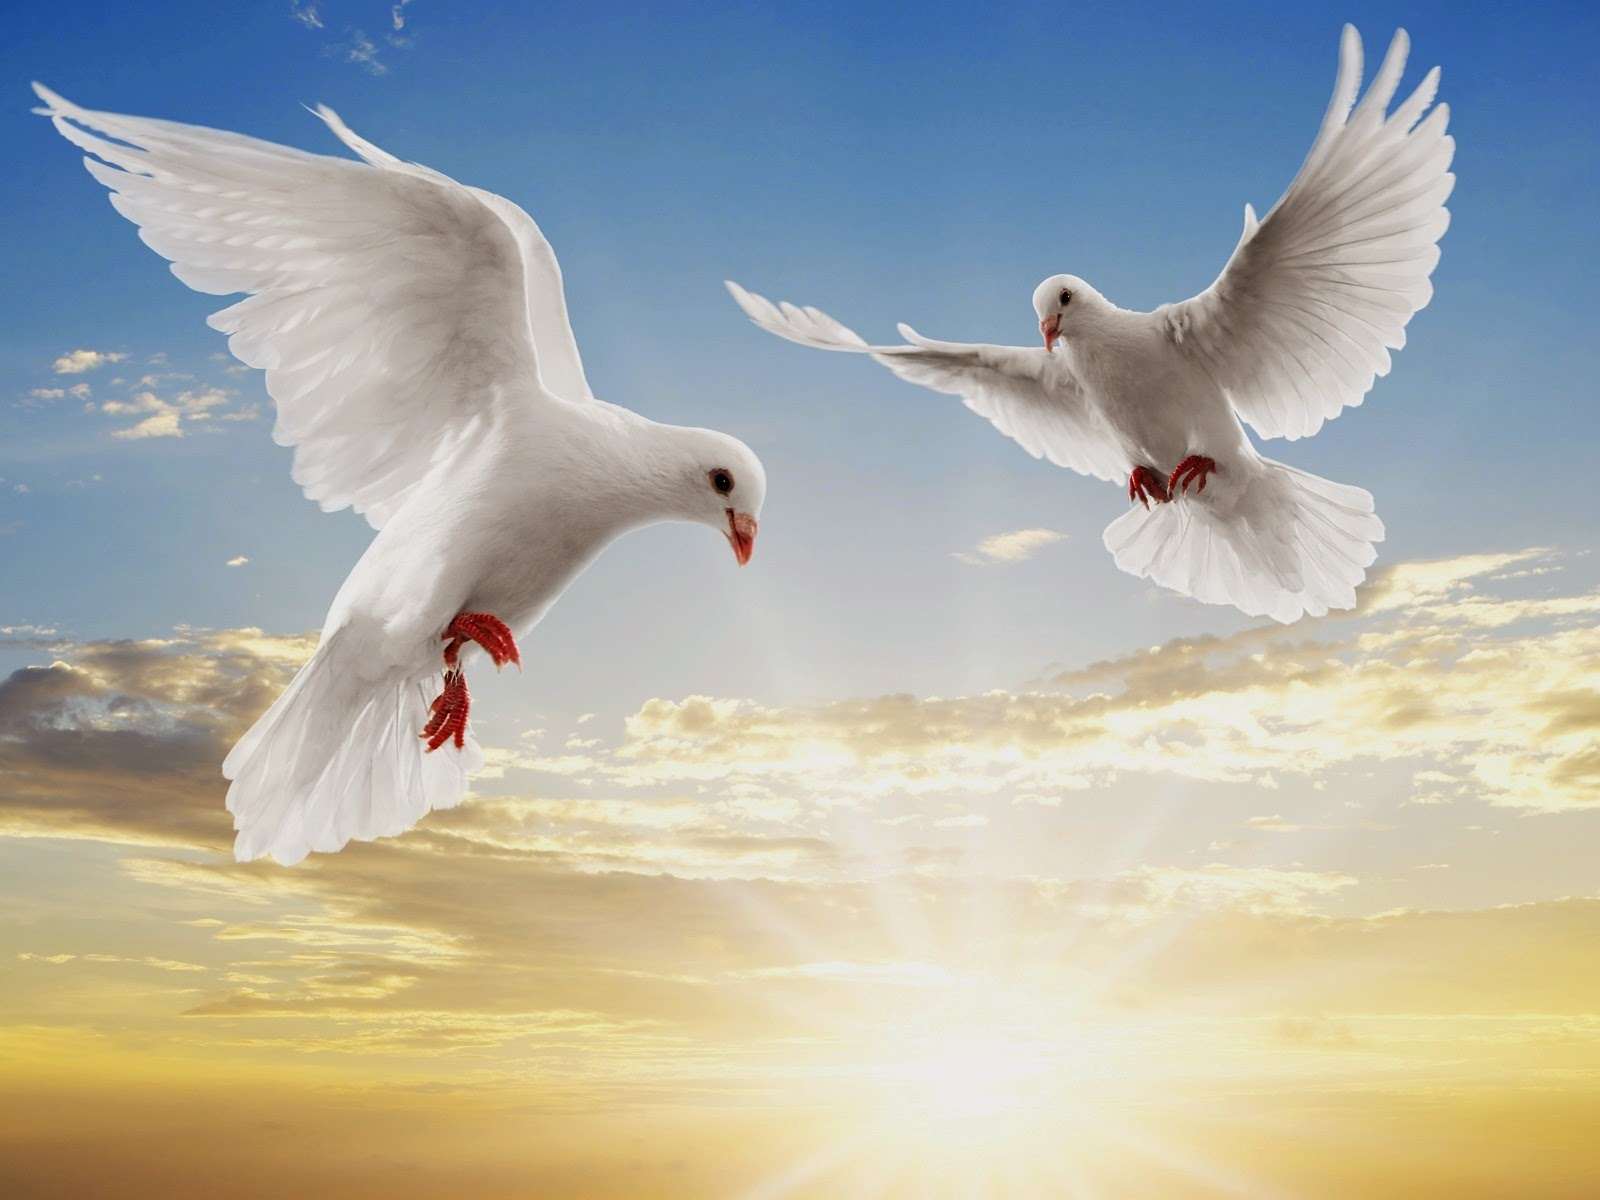 Wallpaper All Photos - Birds Flying In The Sky Hd , HD Wallpaper & Backgrounds